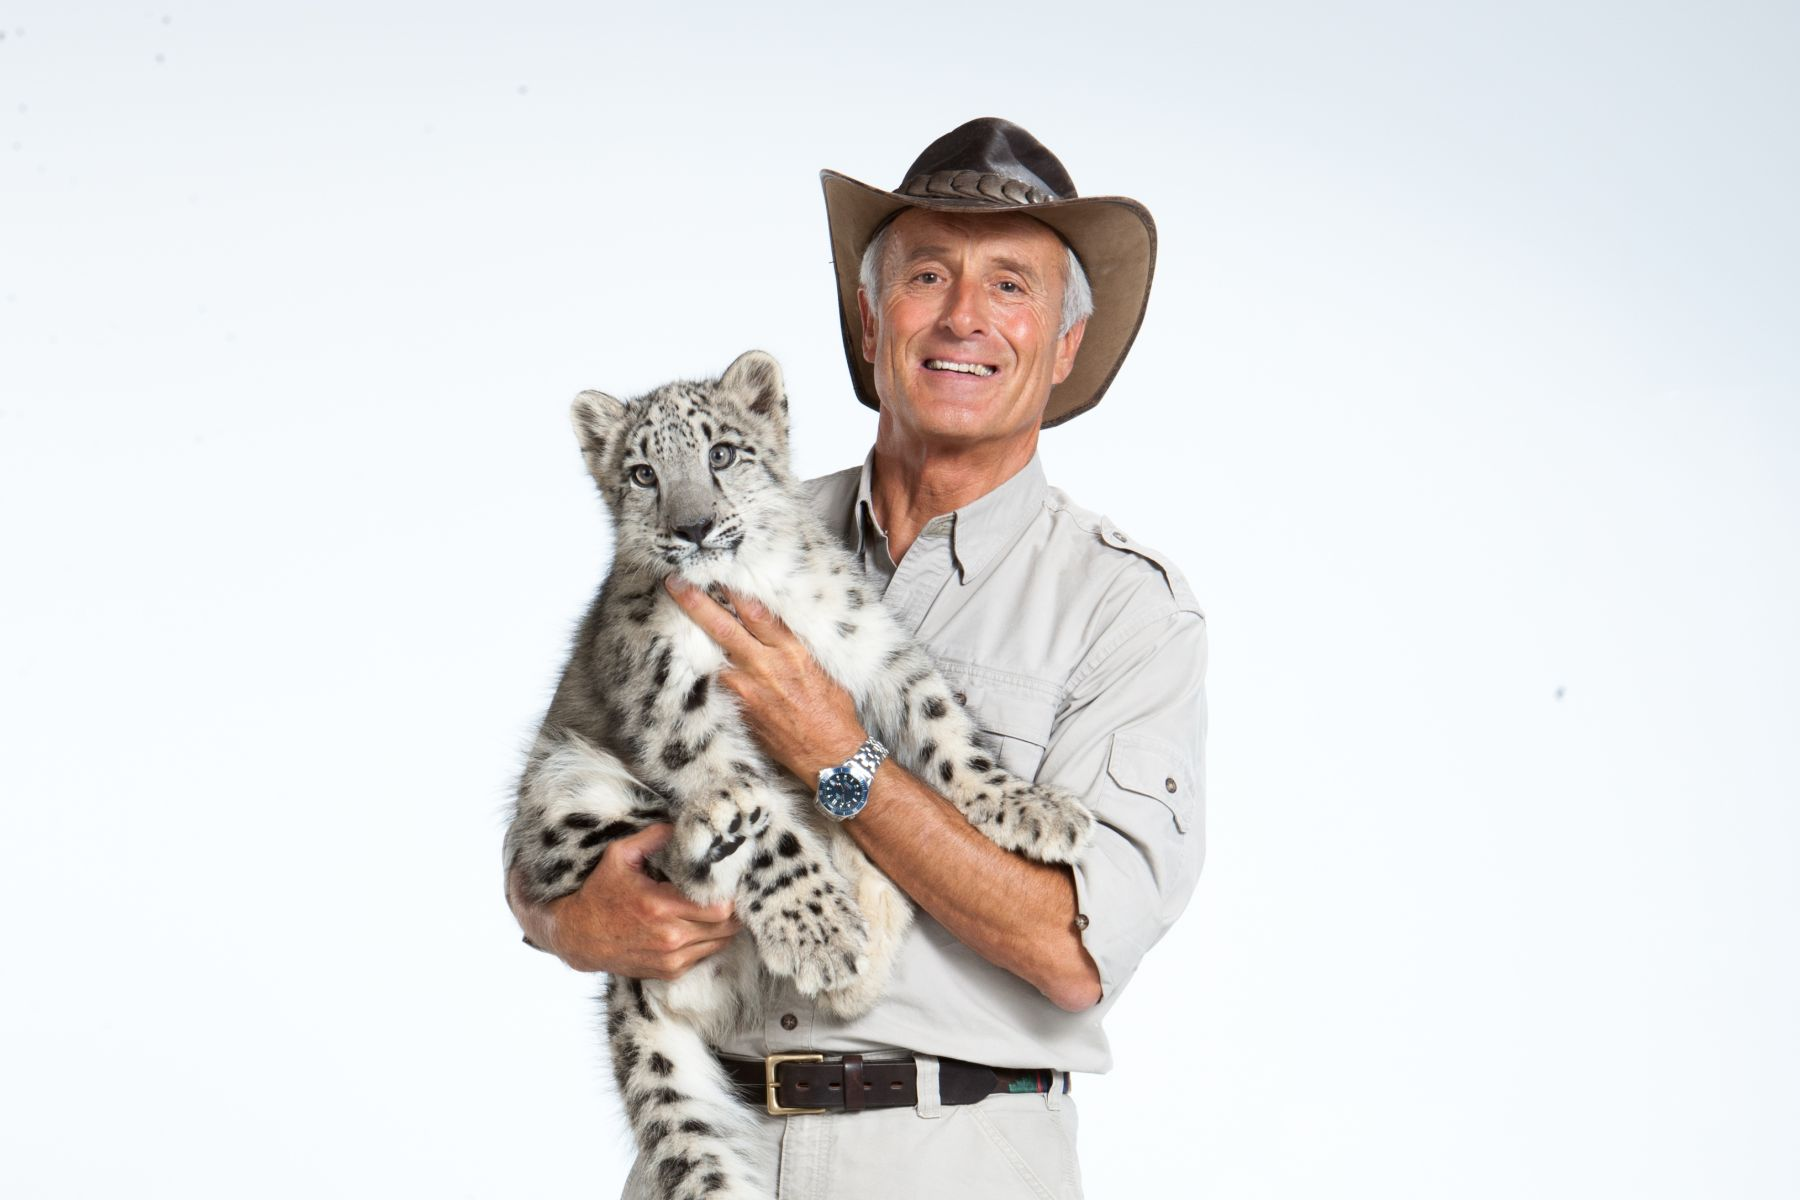 FAMILY NIGHT WITH JACK HANNA – BEGINS AT 7:30 PM